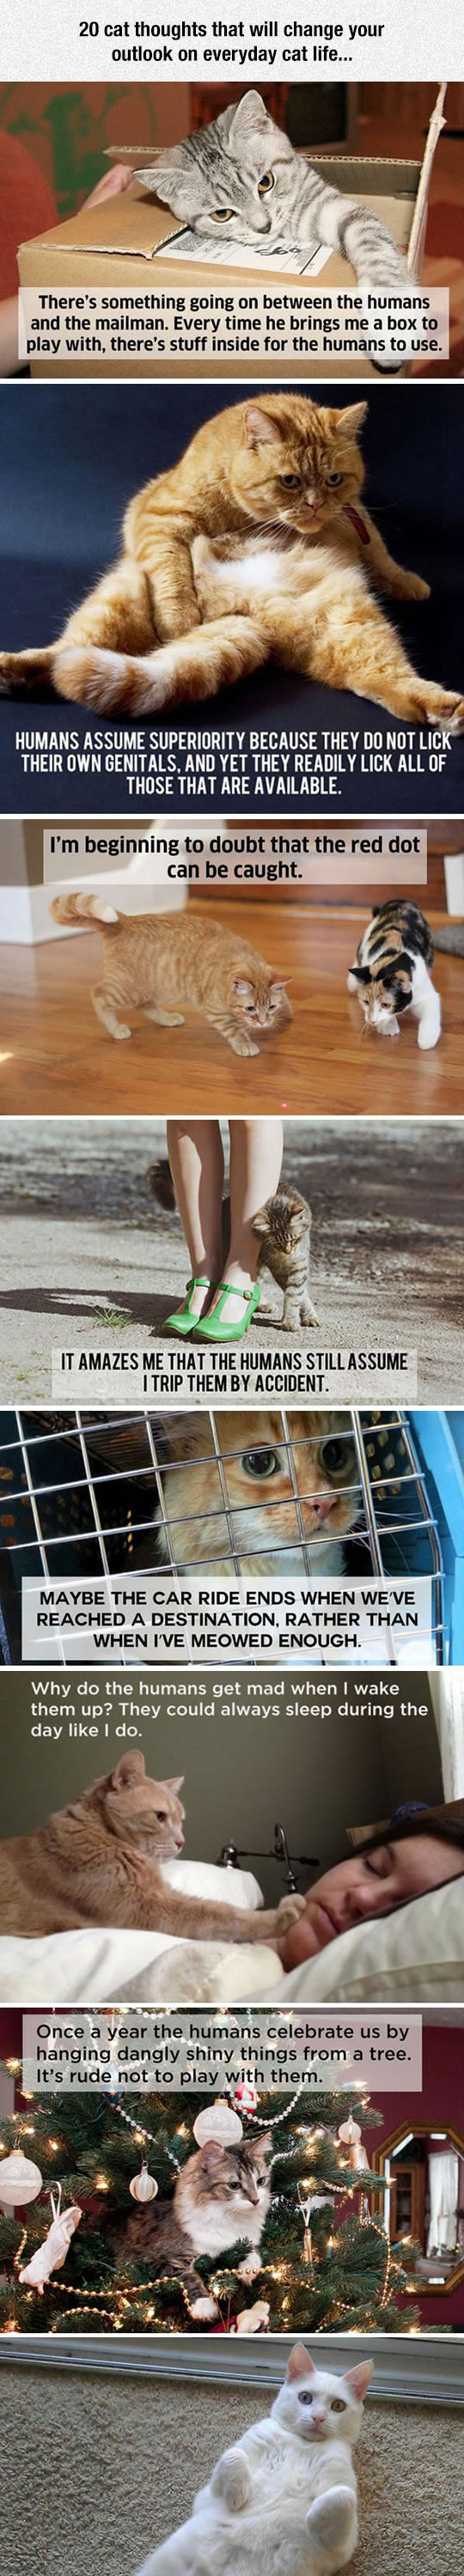 funny-cat-thoughts-human-behavior